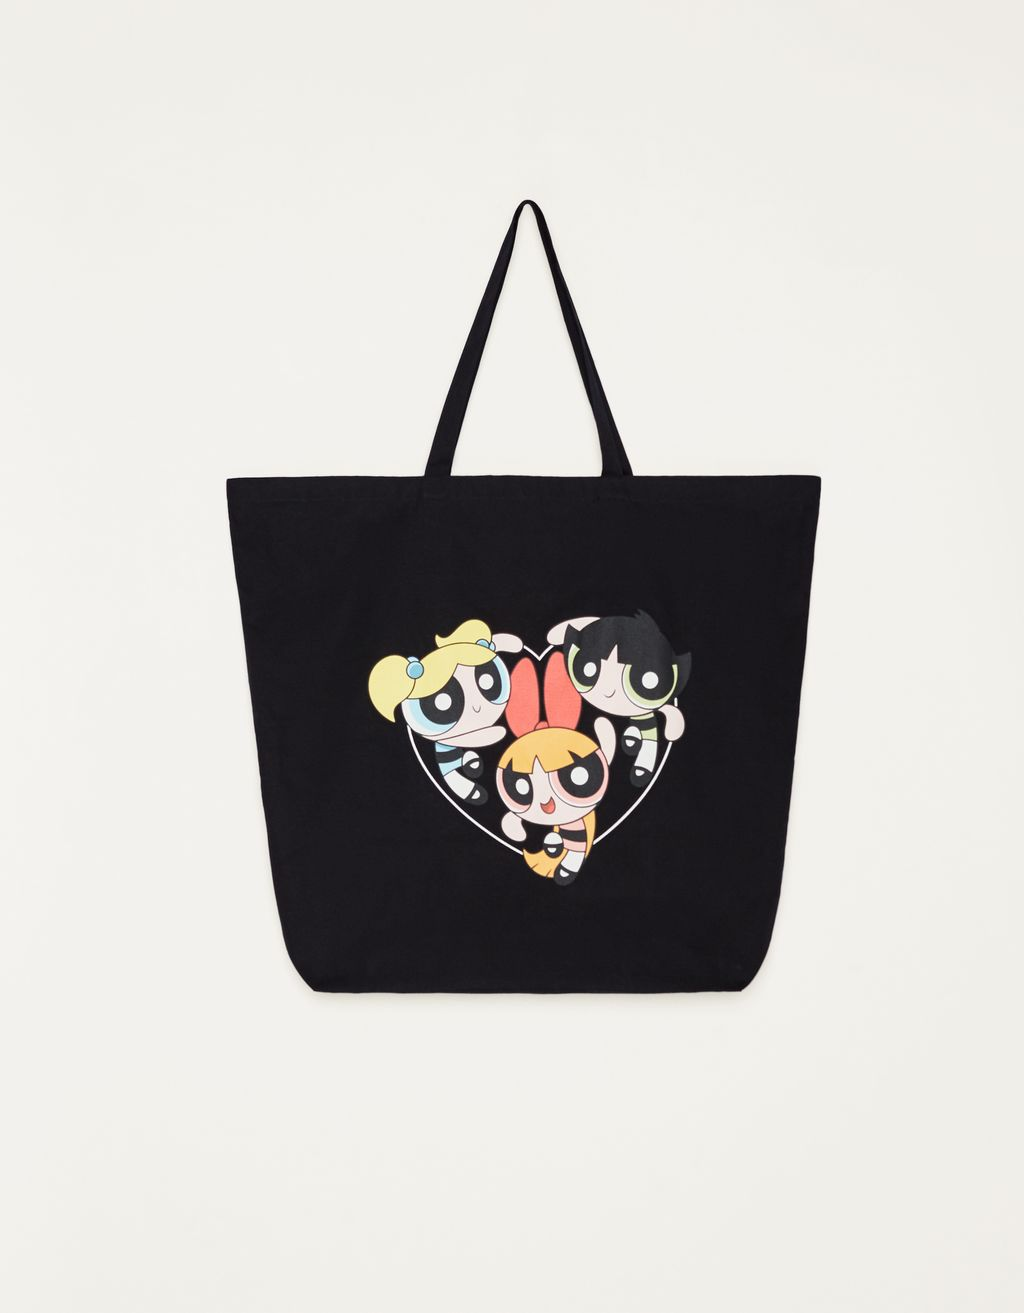 The Powerpuff Girls x Bershka tote